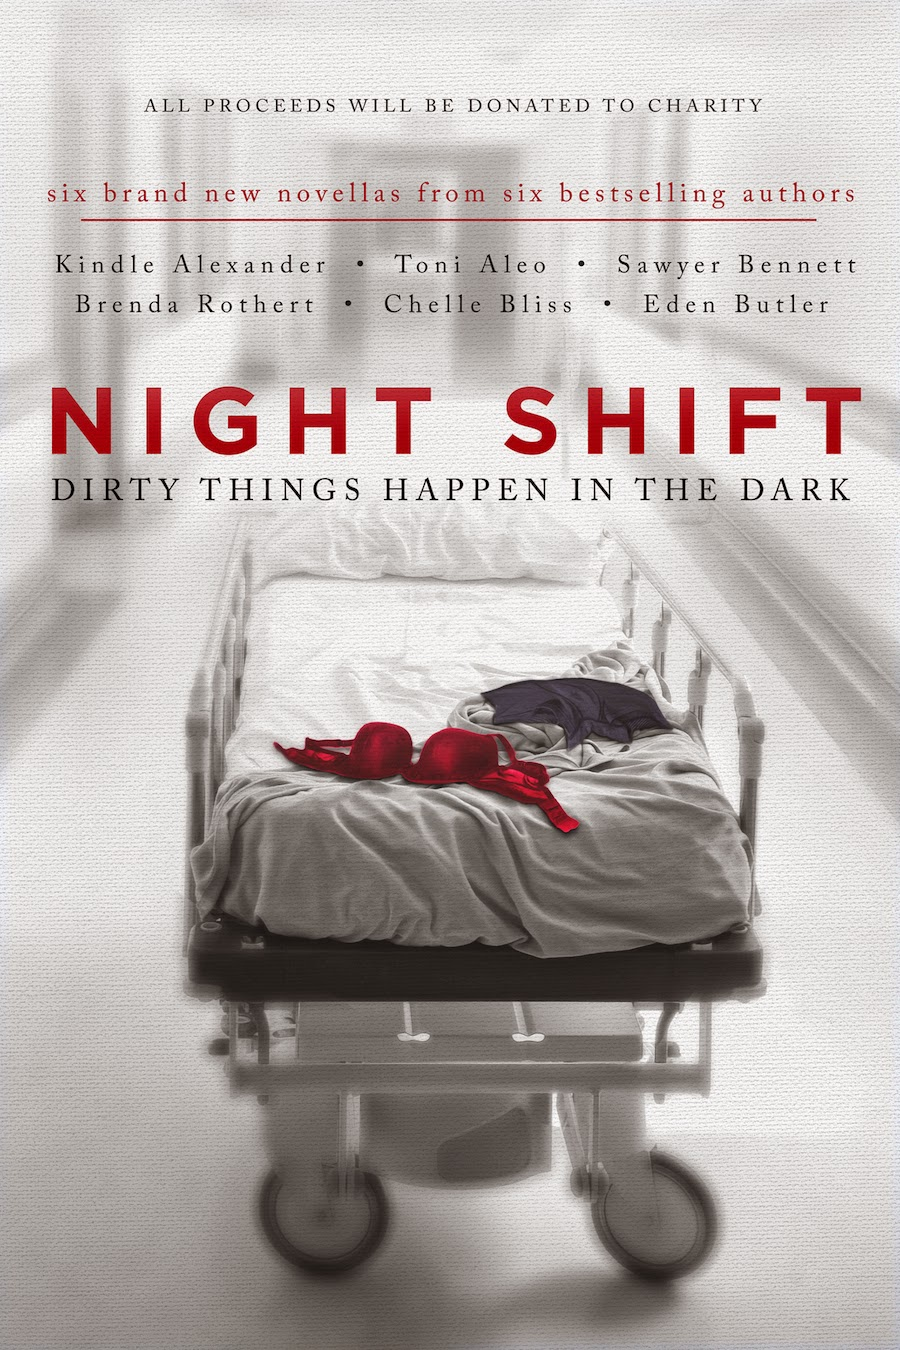 Night Shift: Dirty Things Happen In The Dark Book Review #books #bookreview